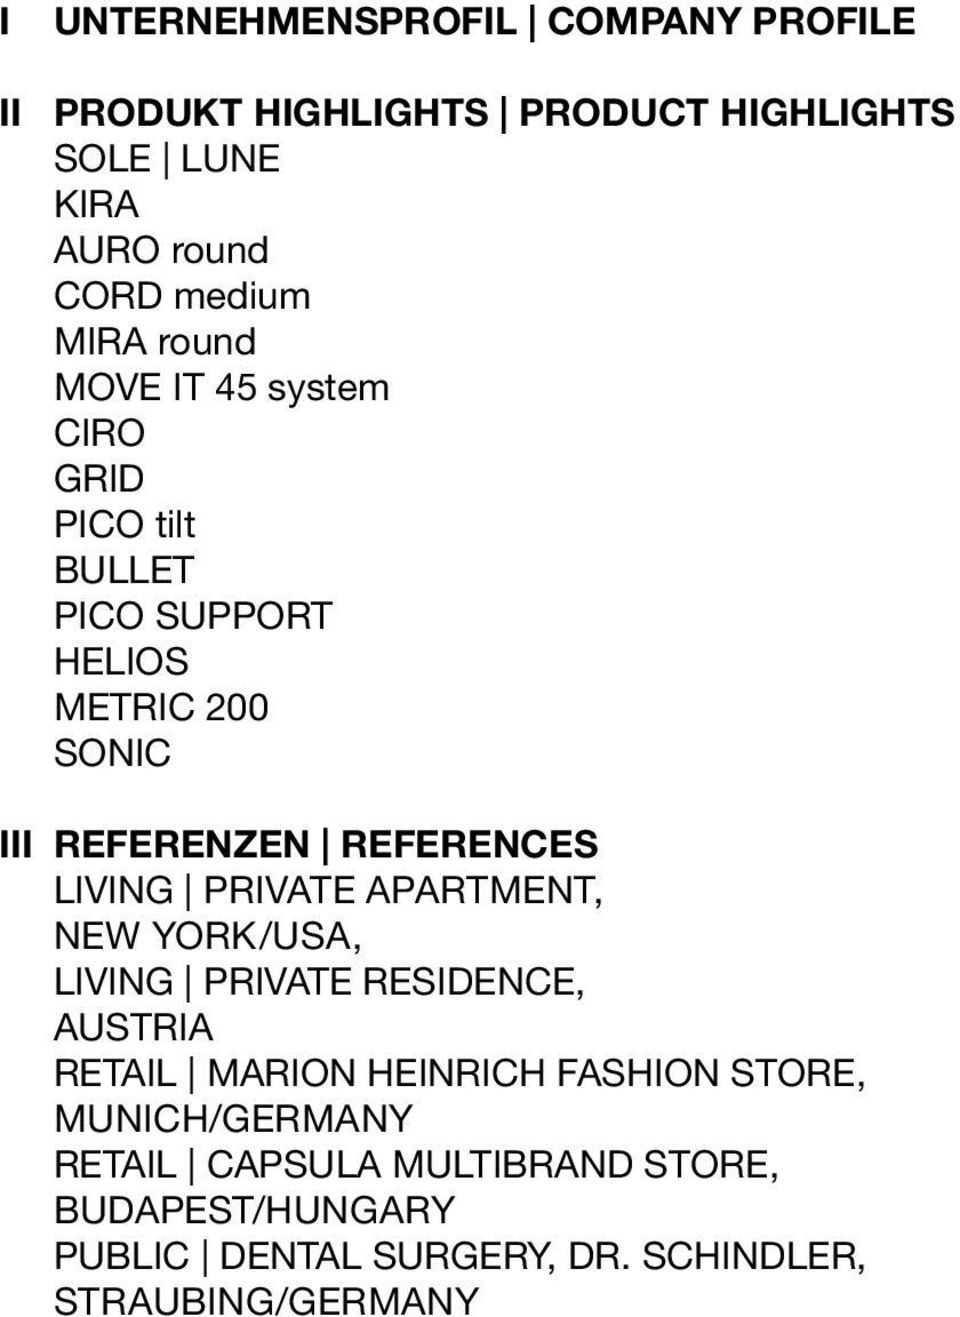 REFERENZEN REFERENCES LIVING PRIVATE APARTMENT, NEW YORK/USA, LIVING PRIVATE RESIDENCE, AUSTRIA RETAIL MARION